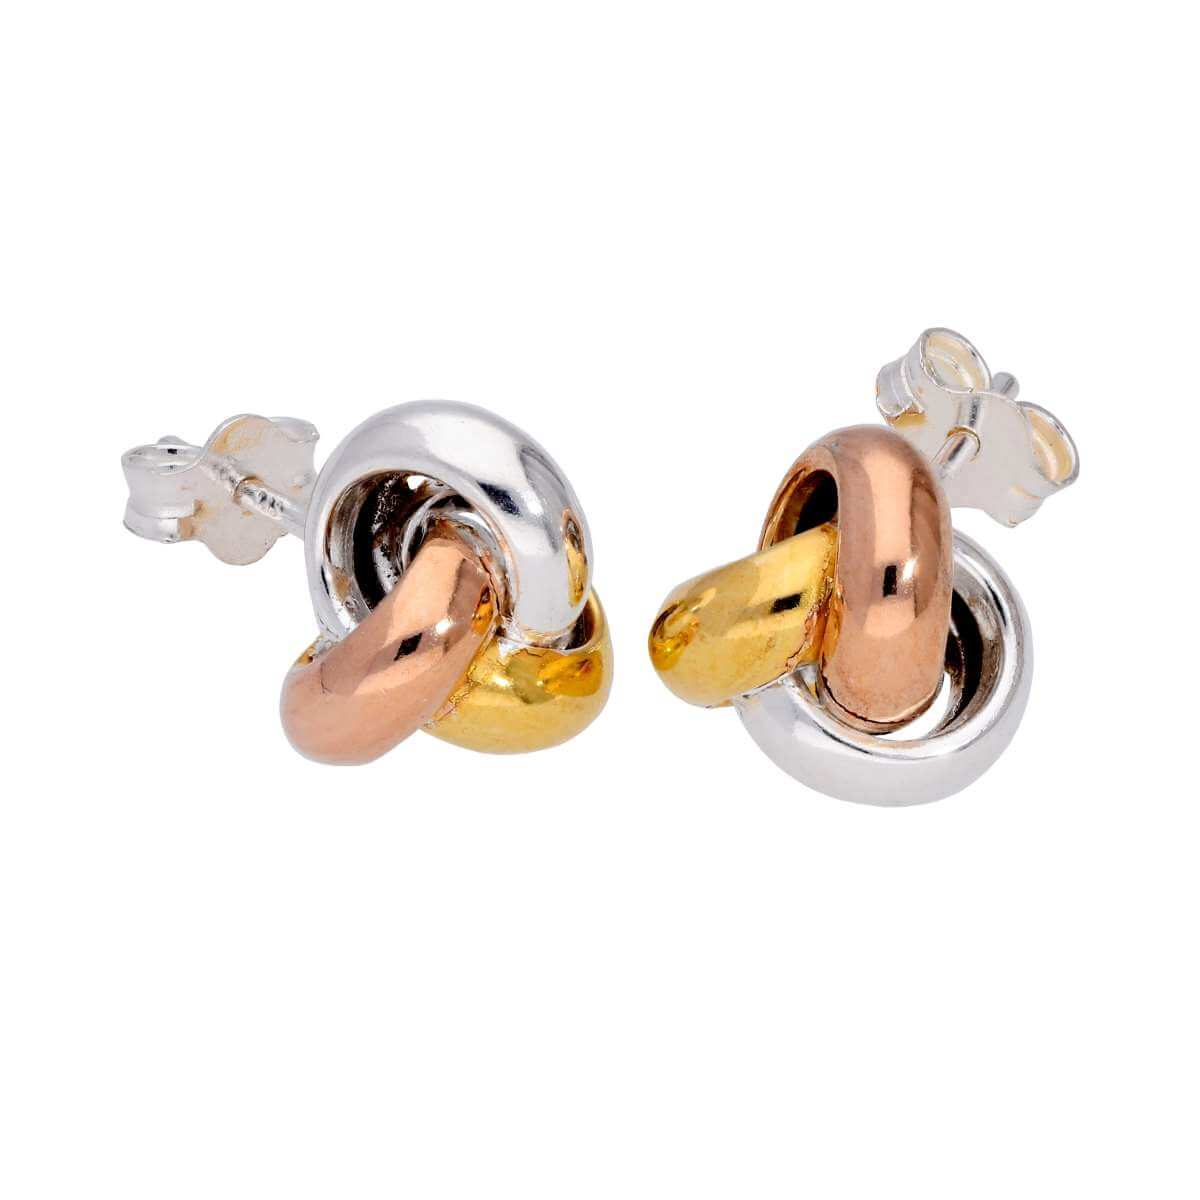 Tricolour Gold Plated Sterling Silver Knot Stud Earrings